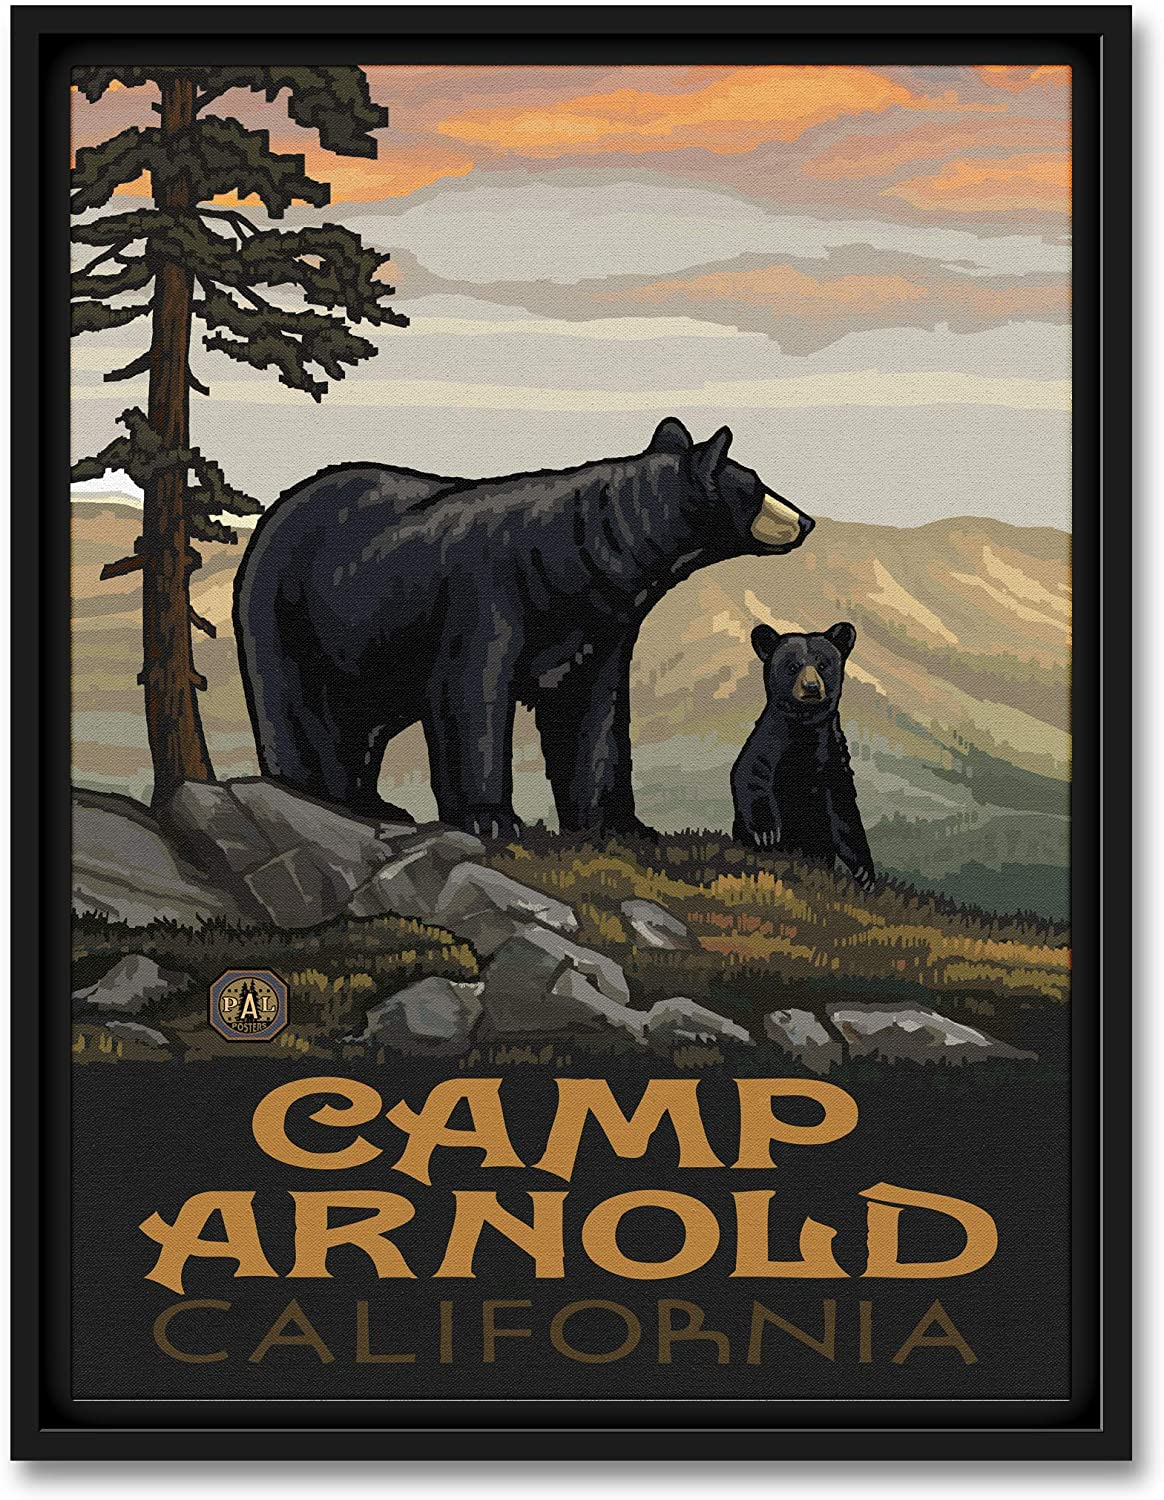 Camp Arnold California Black Bear Family Professionally Framed Giclee Archival Canvas Wall Art for Home & Office from Original Travel Artwork by Artist Paul A. Lanquist 9 x 12